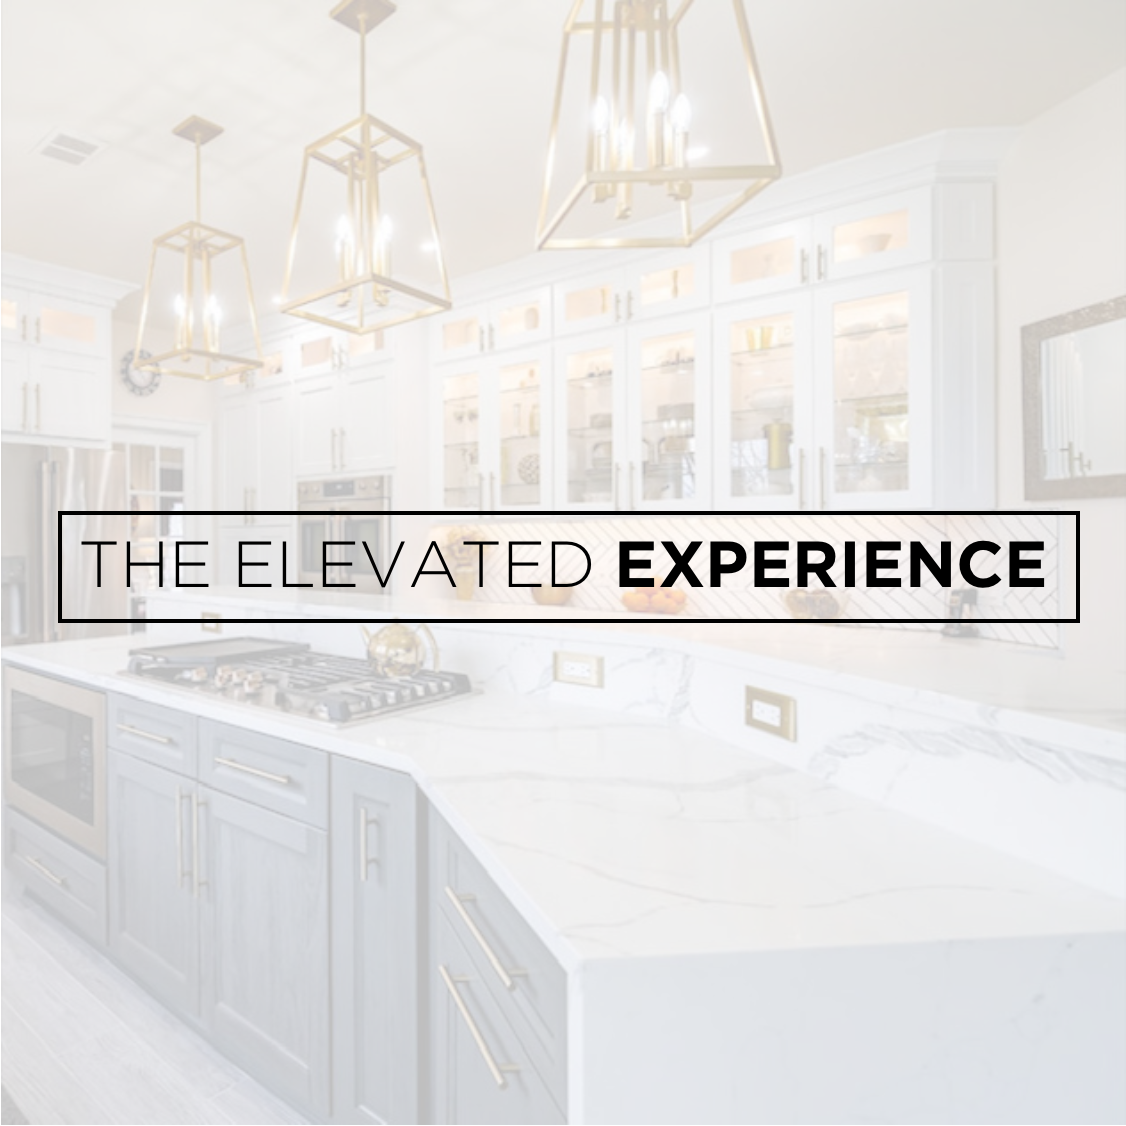 The Elevated Experience